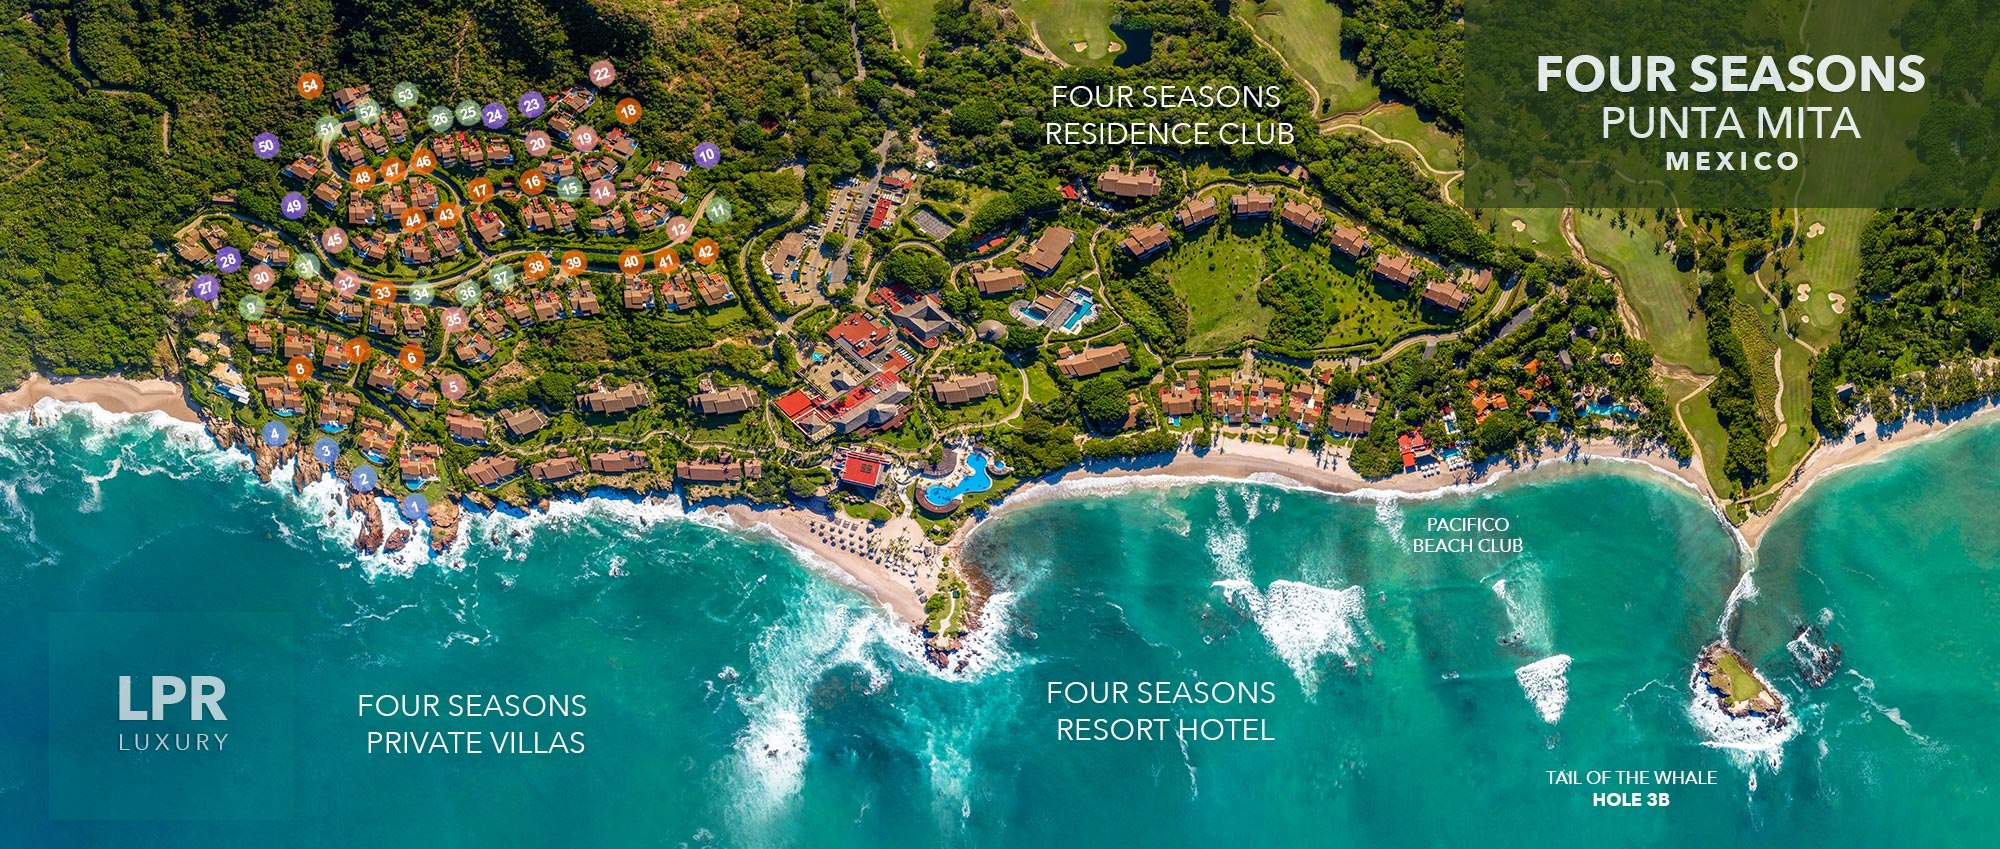 Explore the Four Seasons Resort - Punta Mita, Riviera Nayarit, Mexico